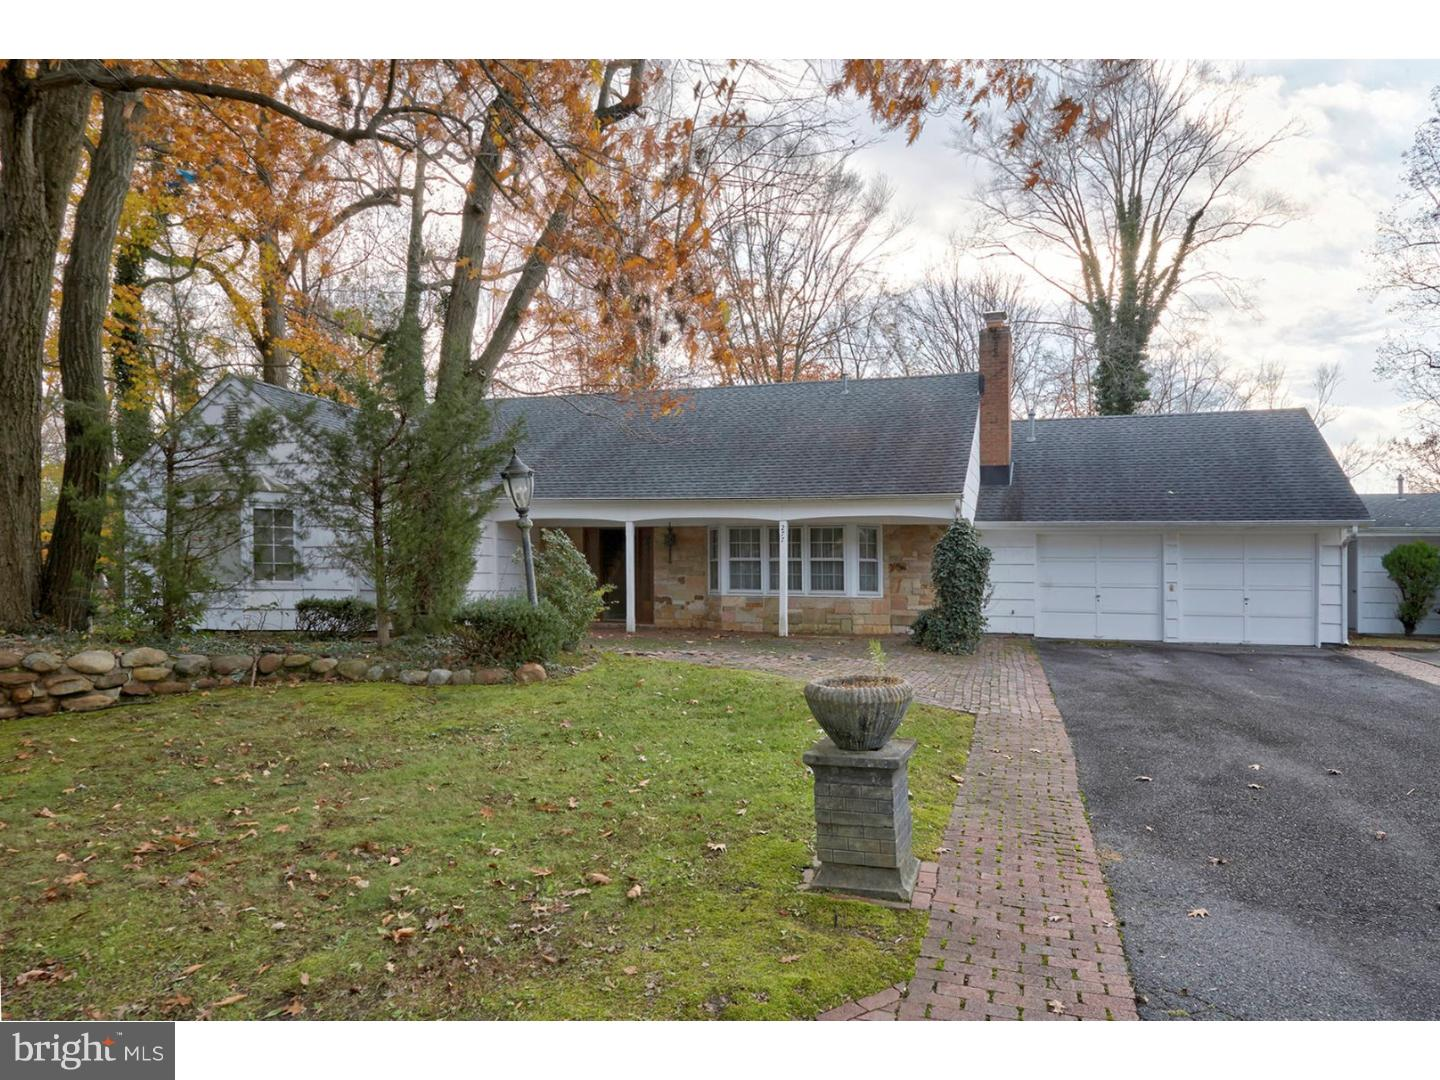 277 CLUB HOUSE DRIVE, WILLINGBORO, NJ 08046